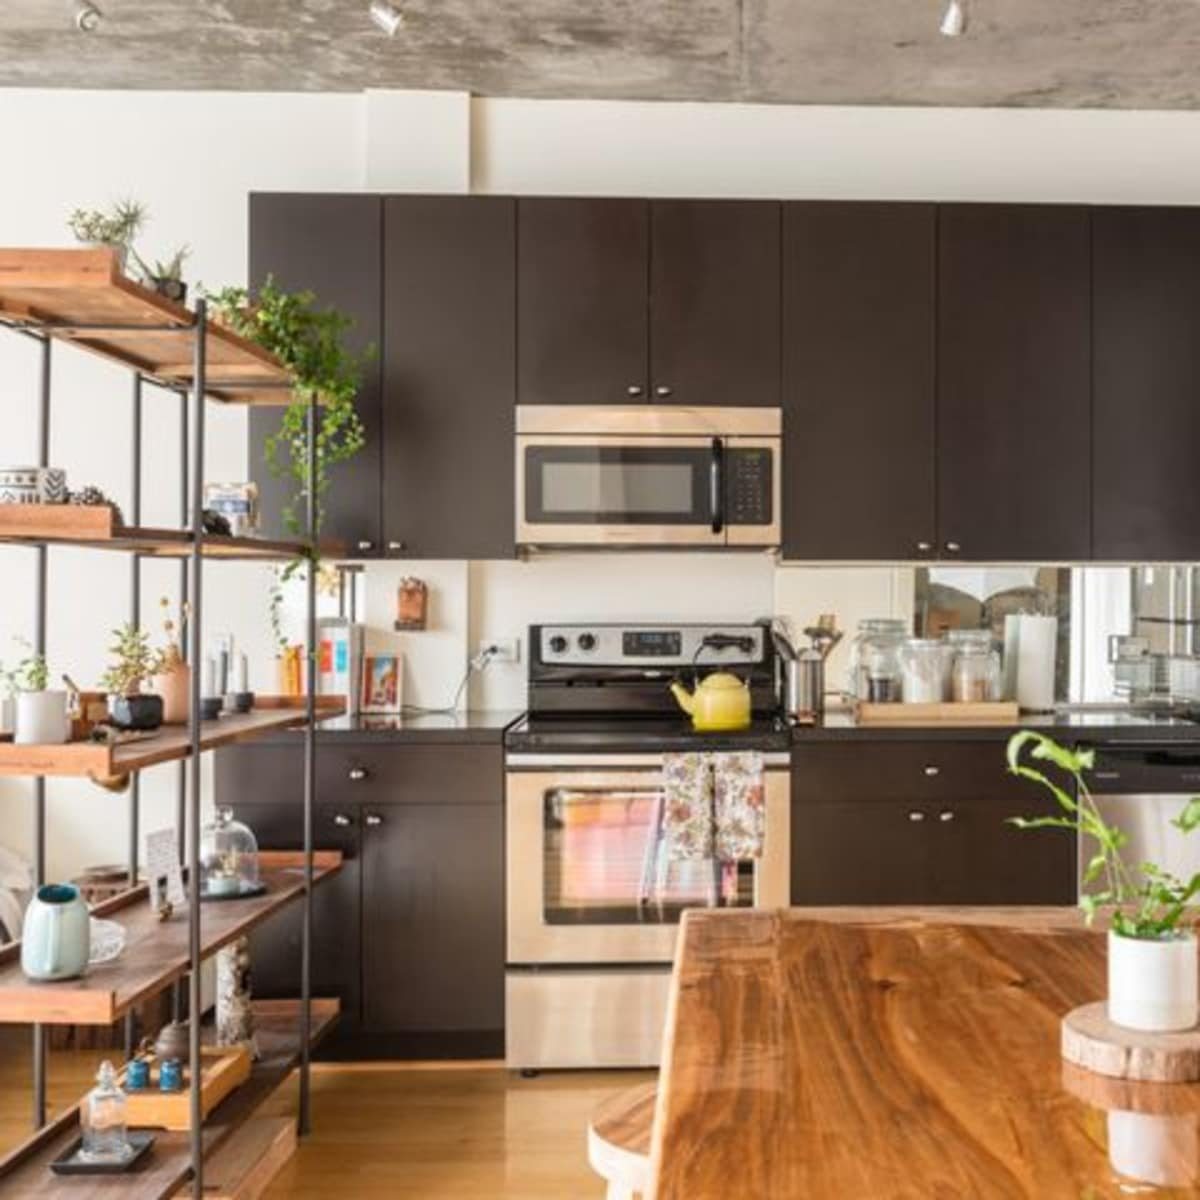 Houzz kitchen with wood floor and wood island